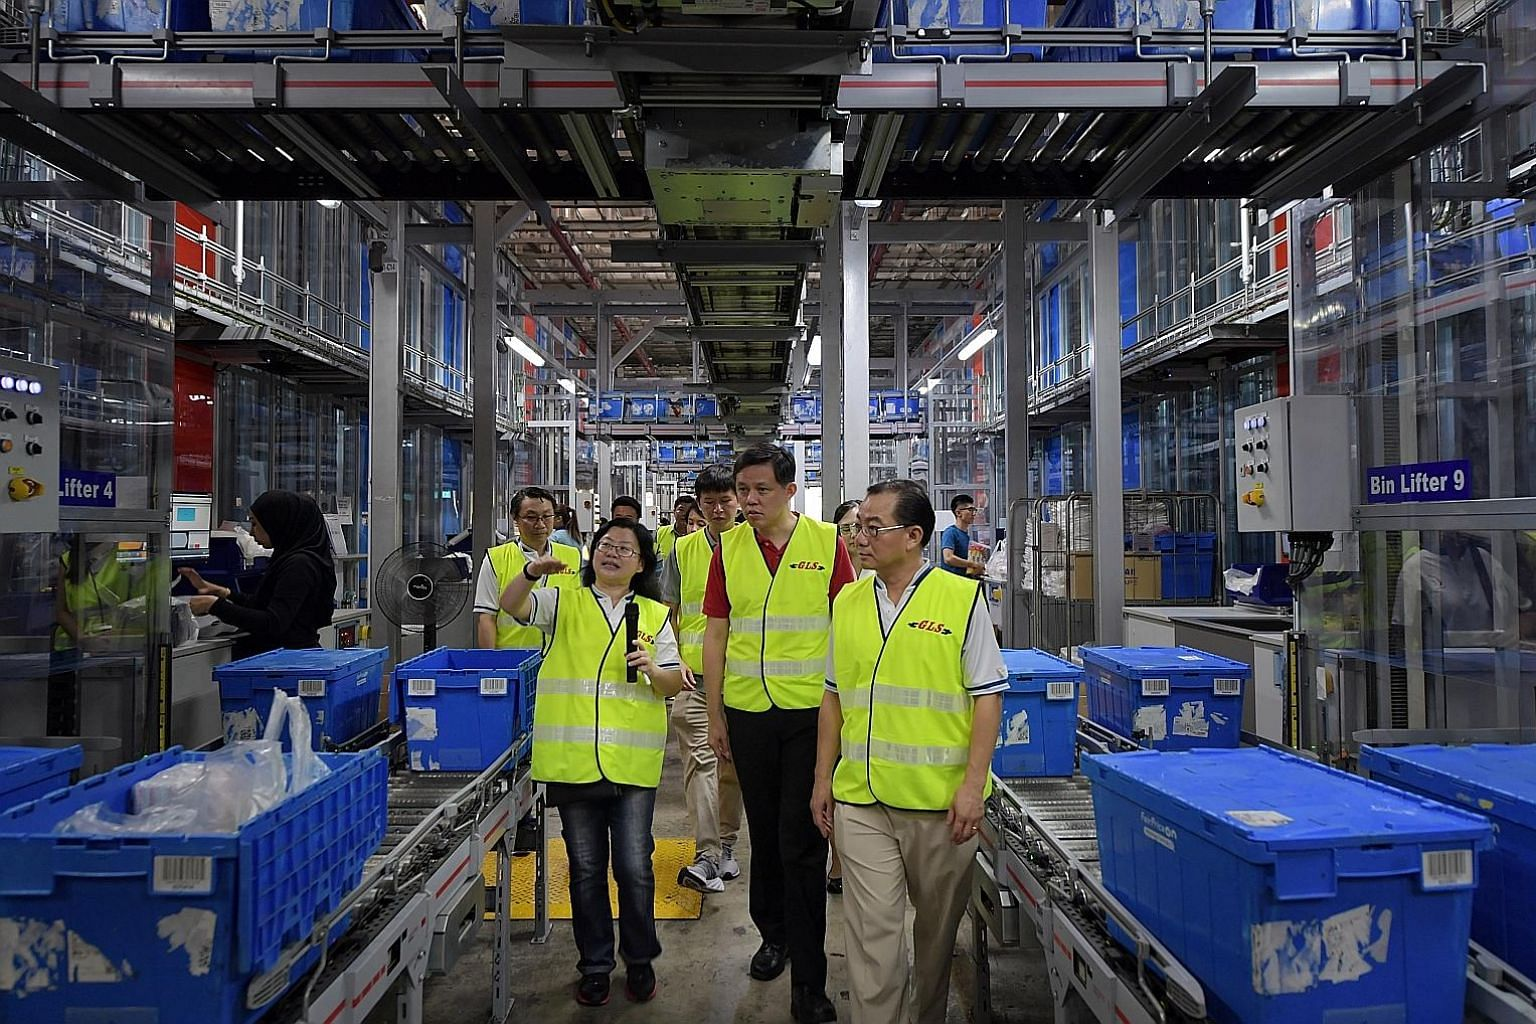 Trade and Industry Minister Chan Chun Sing (centre) taking a tour of FairPrice's Benoi Distribution Centre last month, accompanied by FairPrice chief executive Seah Kian Peng (right). Mr Seah yesterday said that prices will be kept affordable, despit